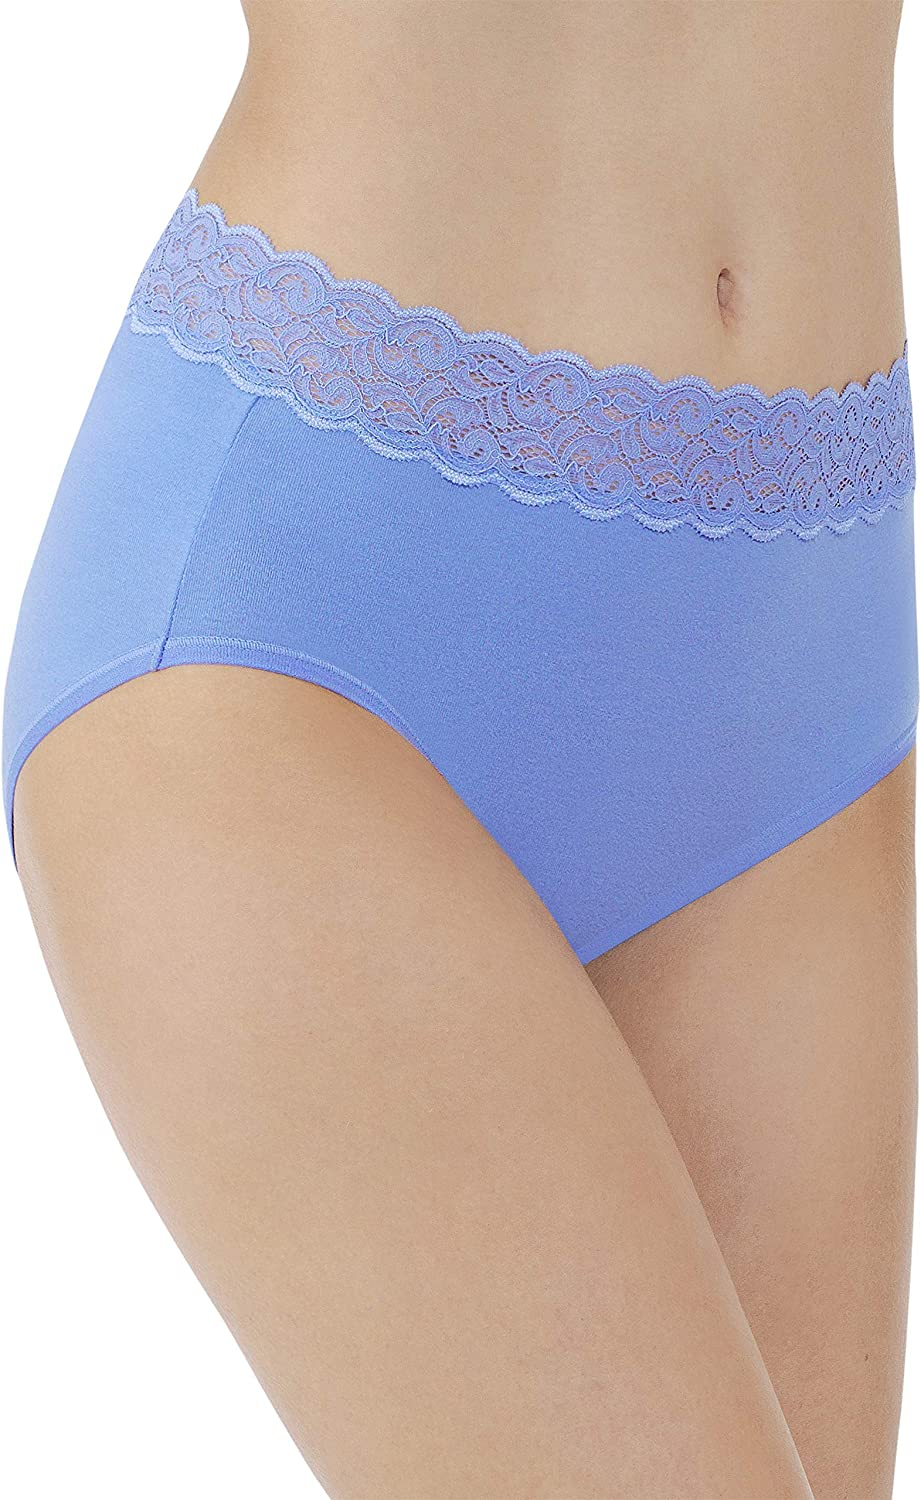 Vanity specialty shop Fair Women's Flattering Lace Max 75% OFF Stretch 1 Panty Brief Cotton